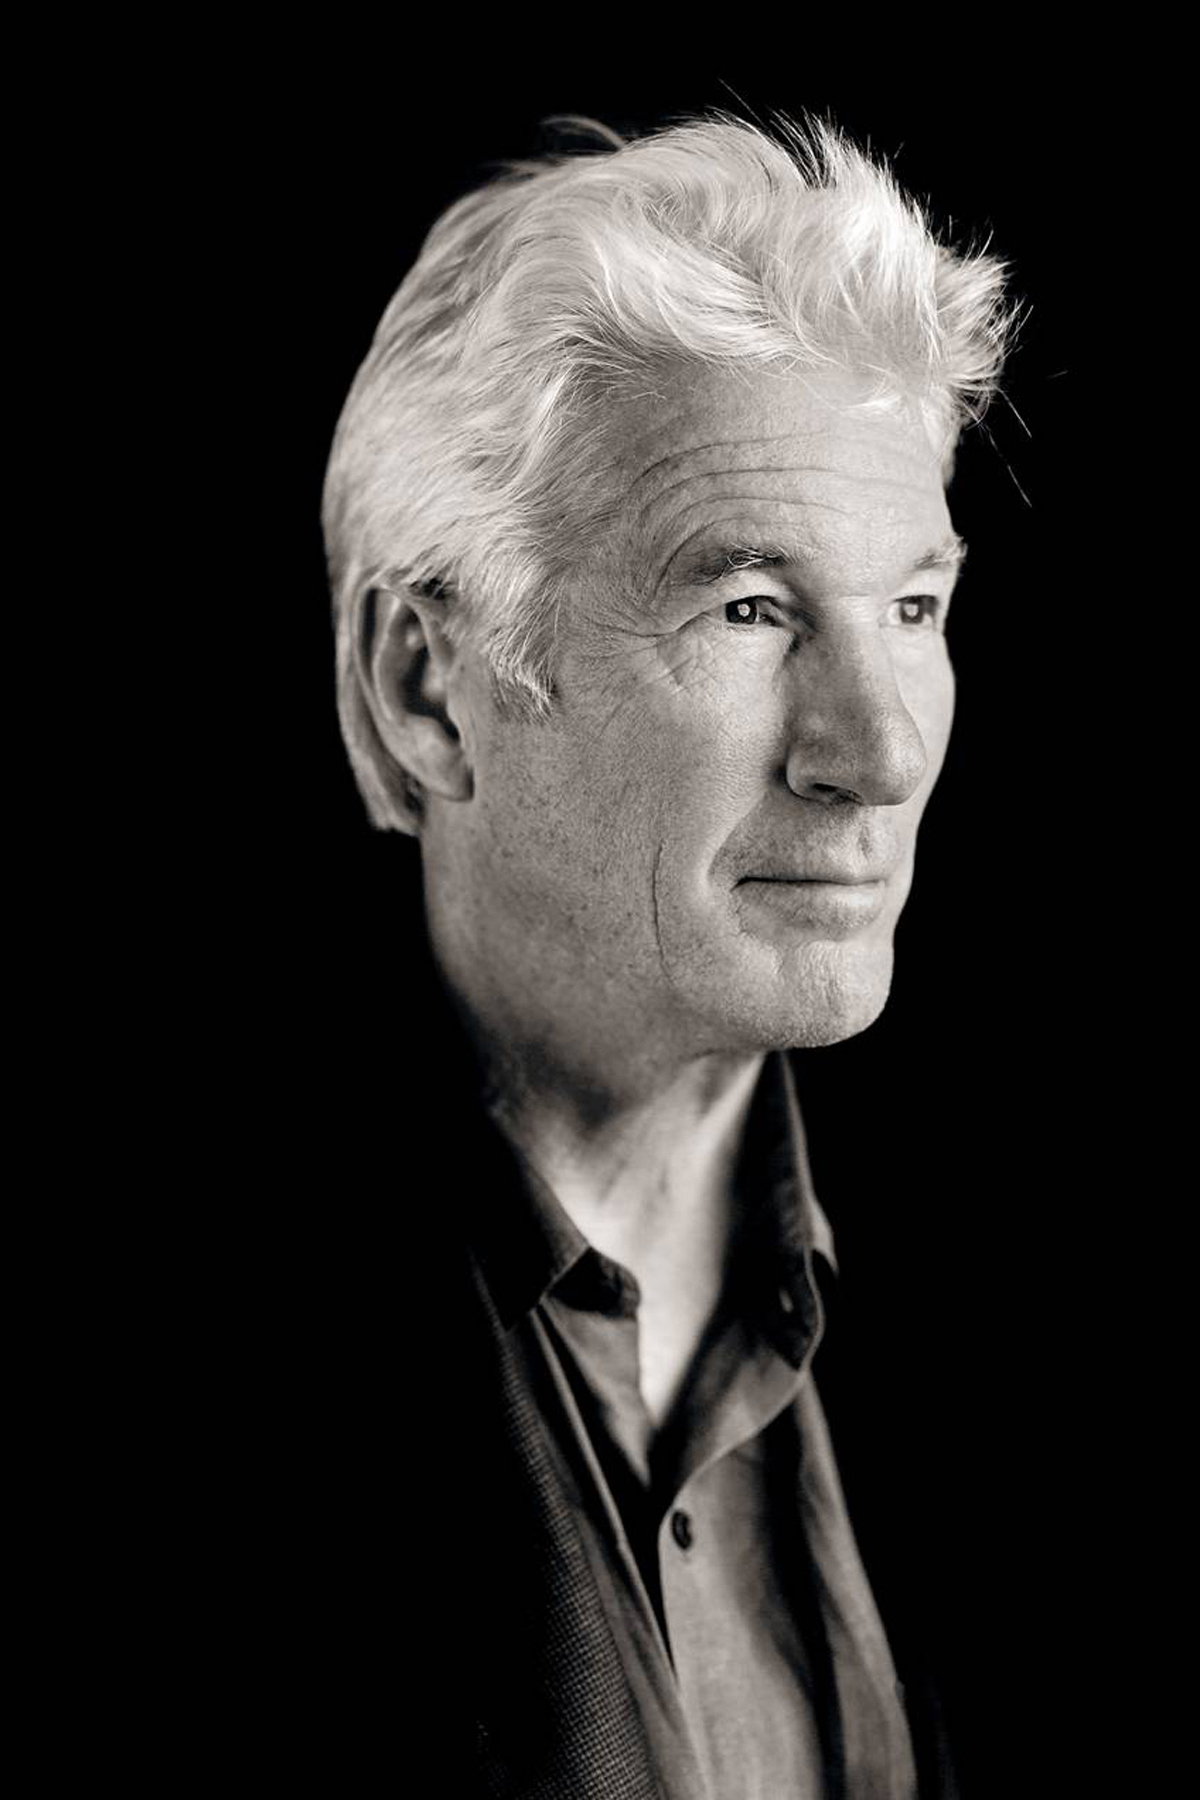 richard gere - photo #28